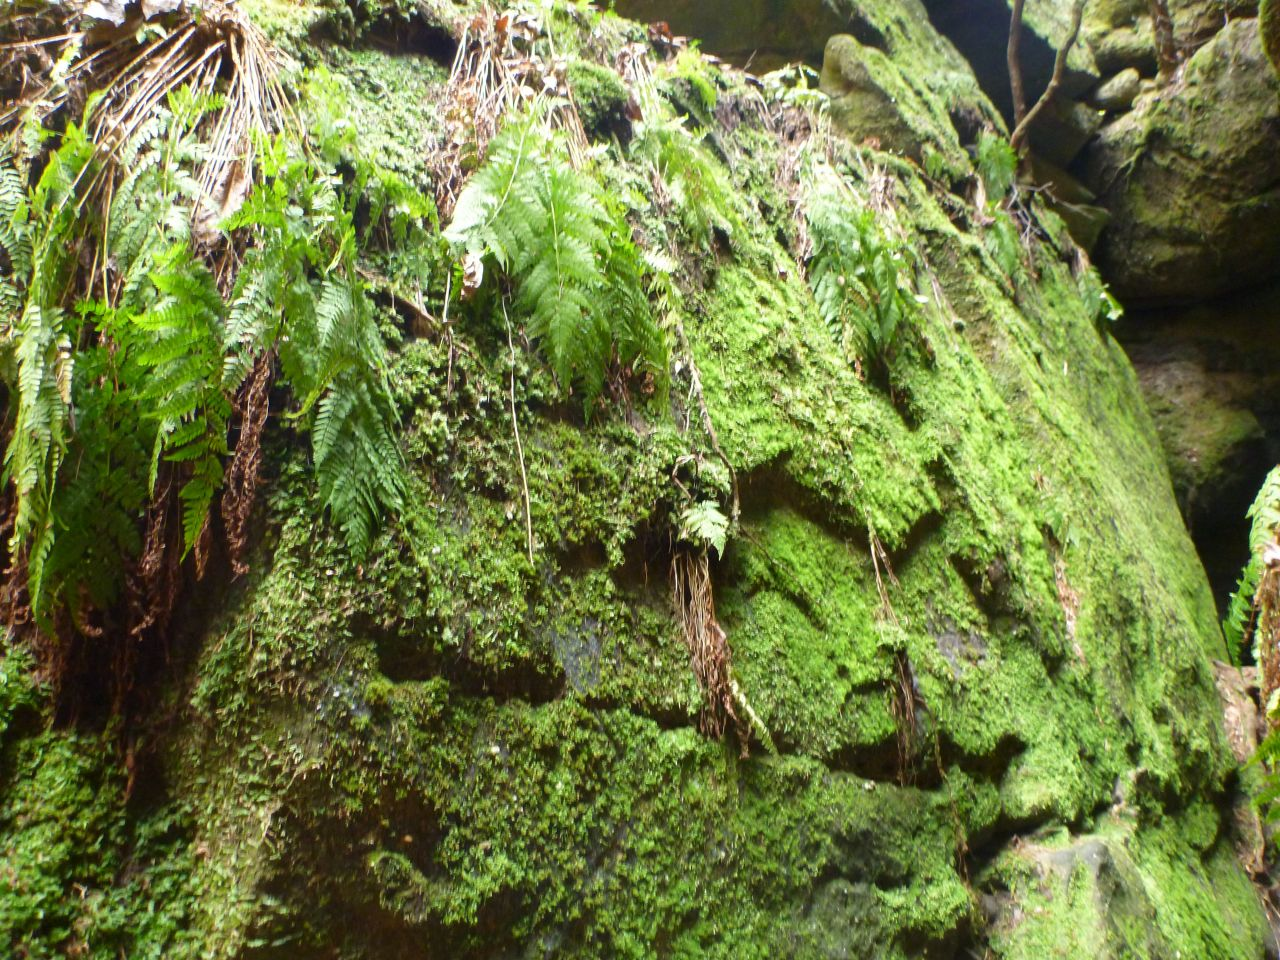 Ferns And Moss Covering Every Surface